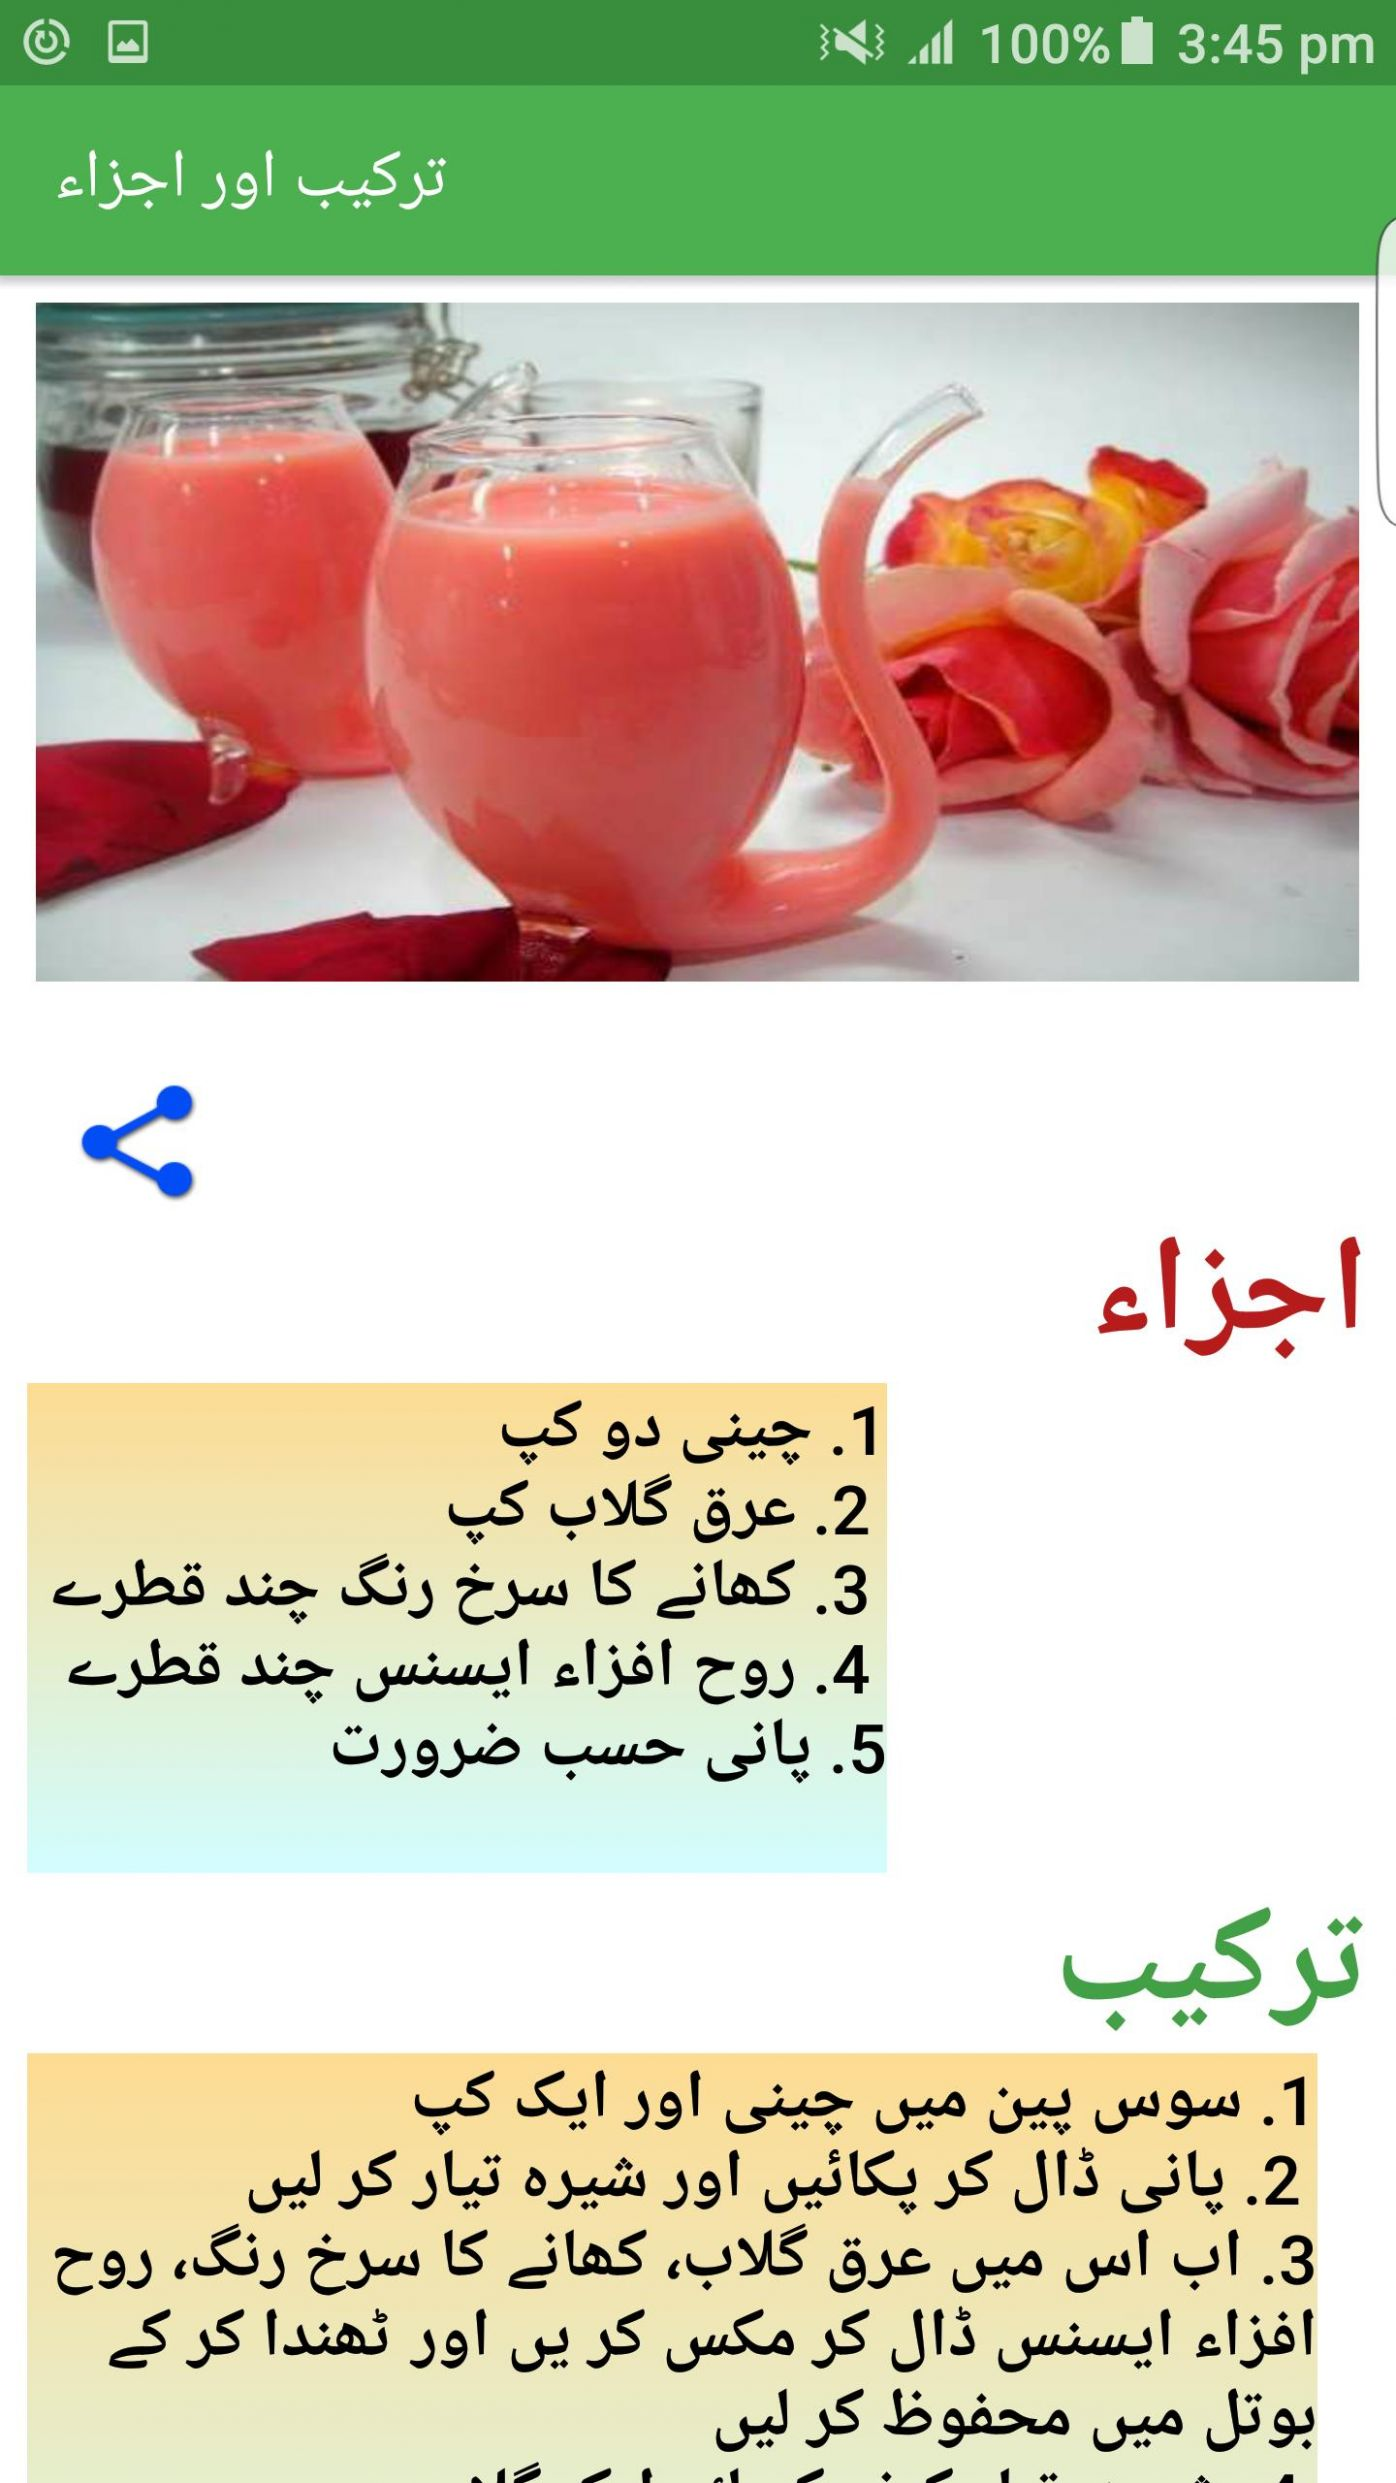 Ramzan Mashrobat sharbat recipe in urdu for Android - APK Download